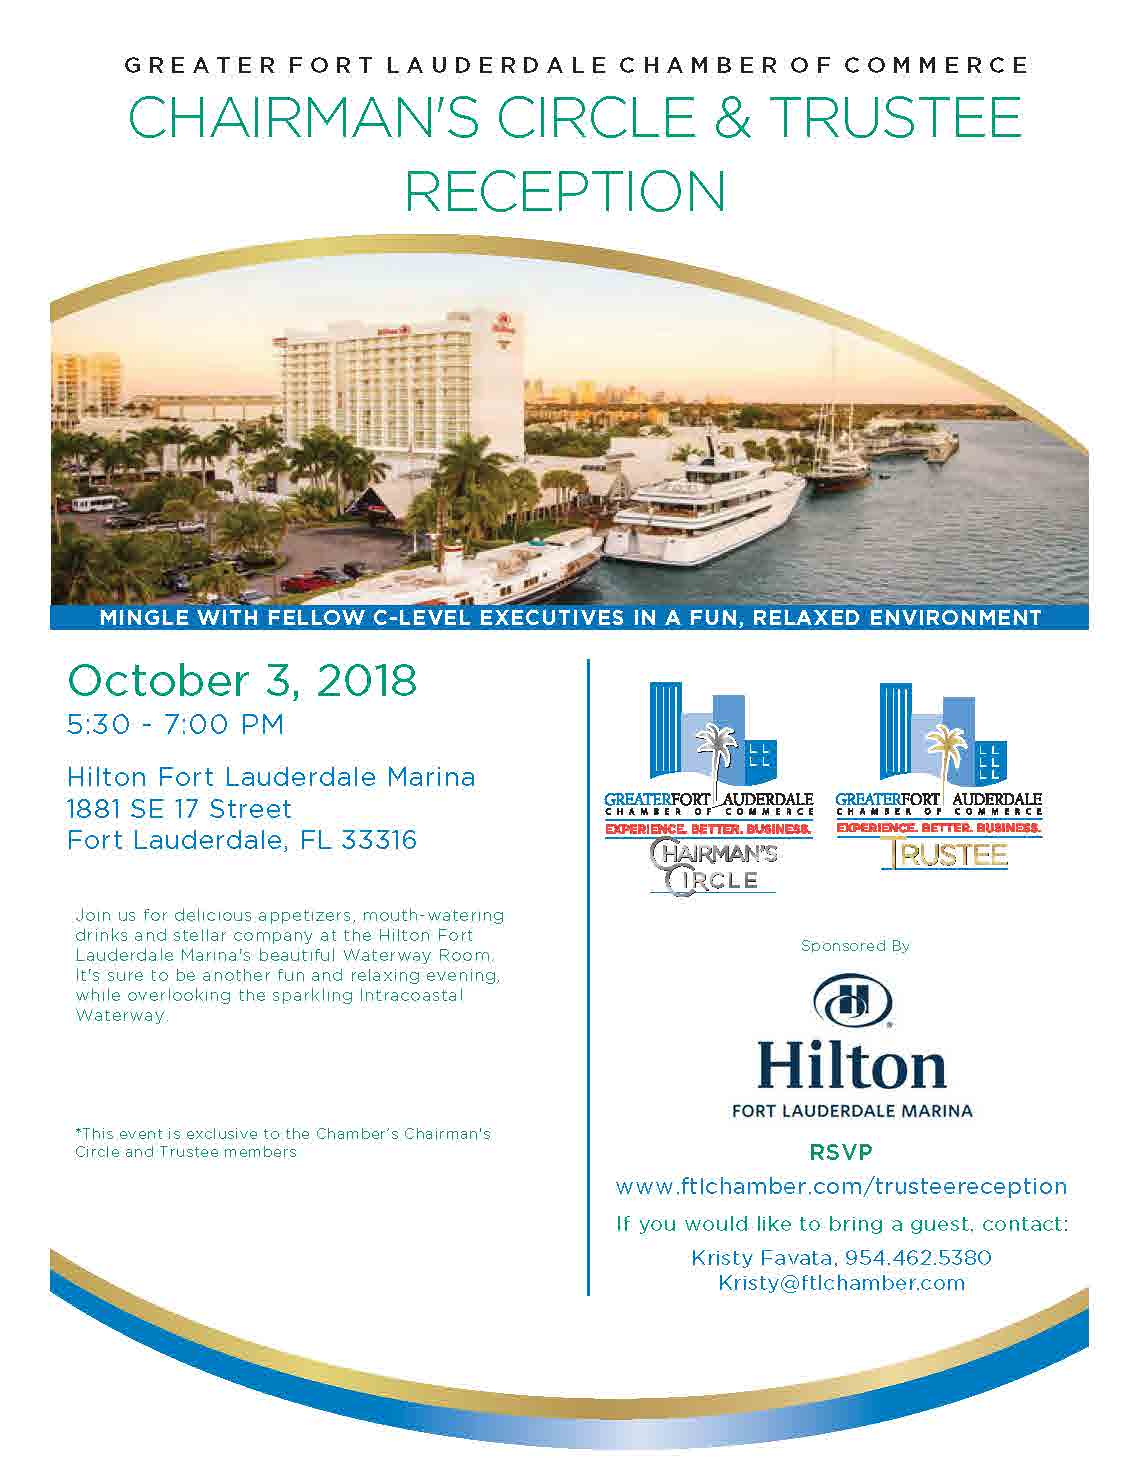 Ft  Lauderdale Chamber of Commerce - Chairman's Circle and